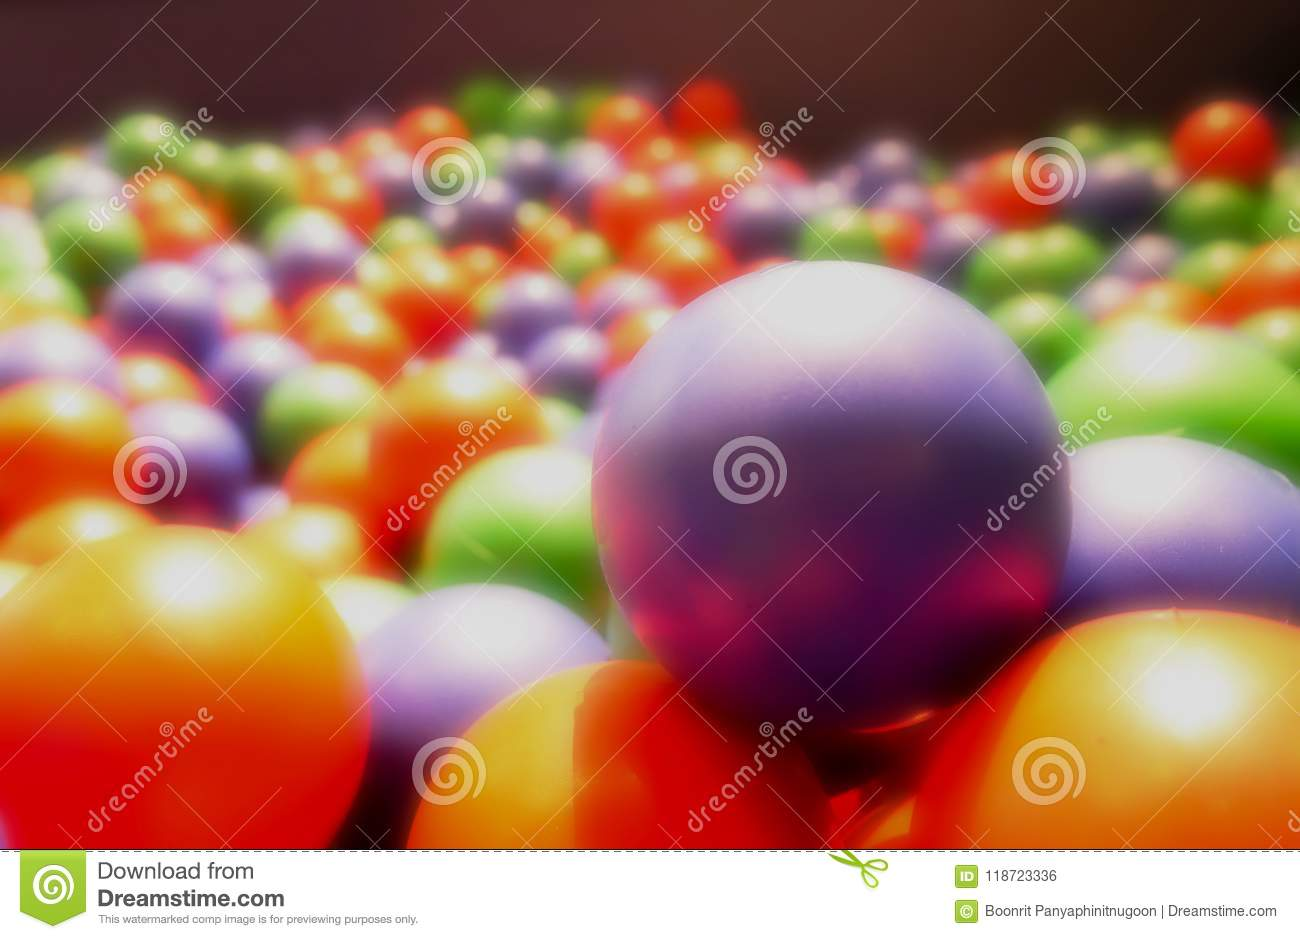 Abstract background, dreamy colorful rubber ball. Toy for kids,